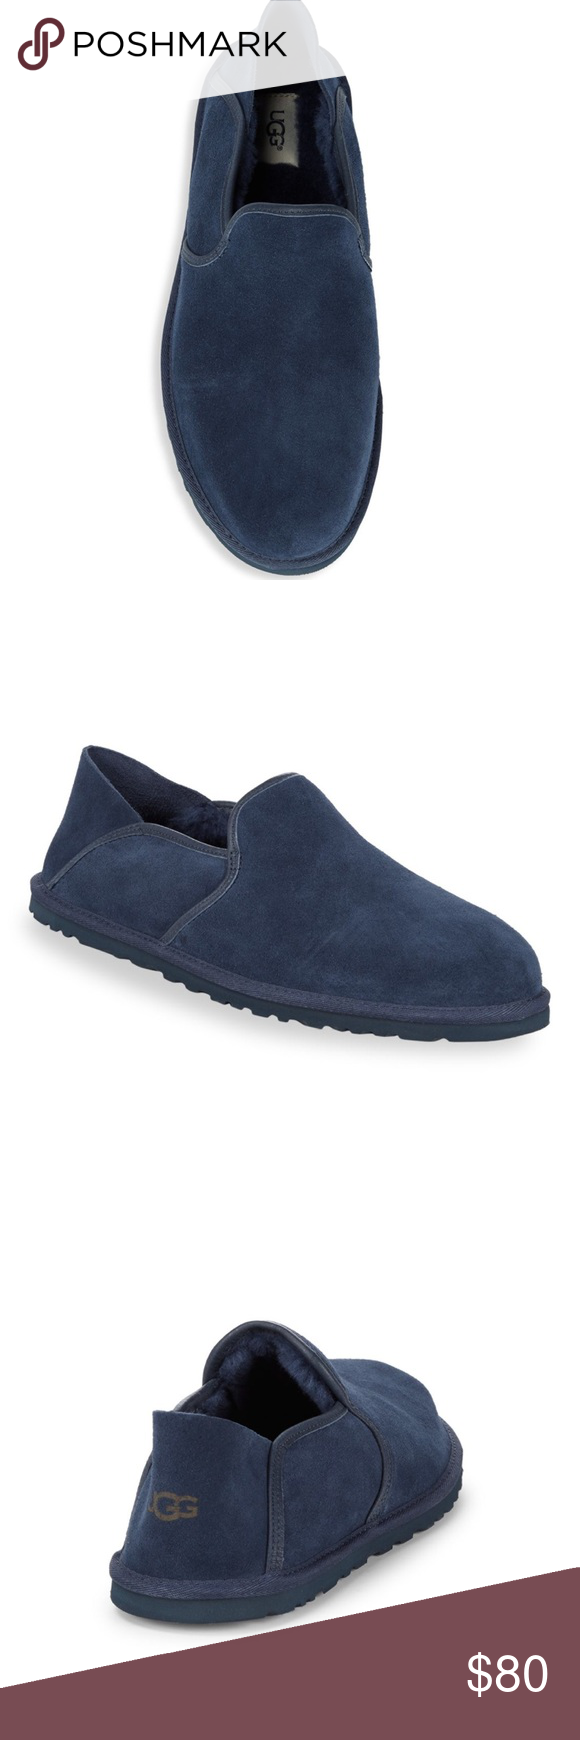 b5c45604444 NIB Men Ugg Suede Slip-Ons Ugg brand shoes for men, this is the M ...